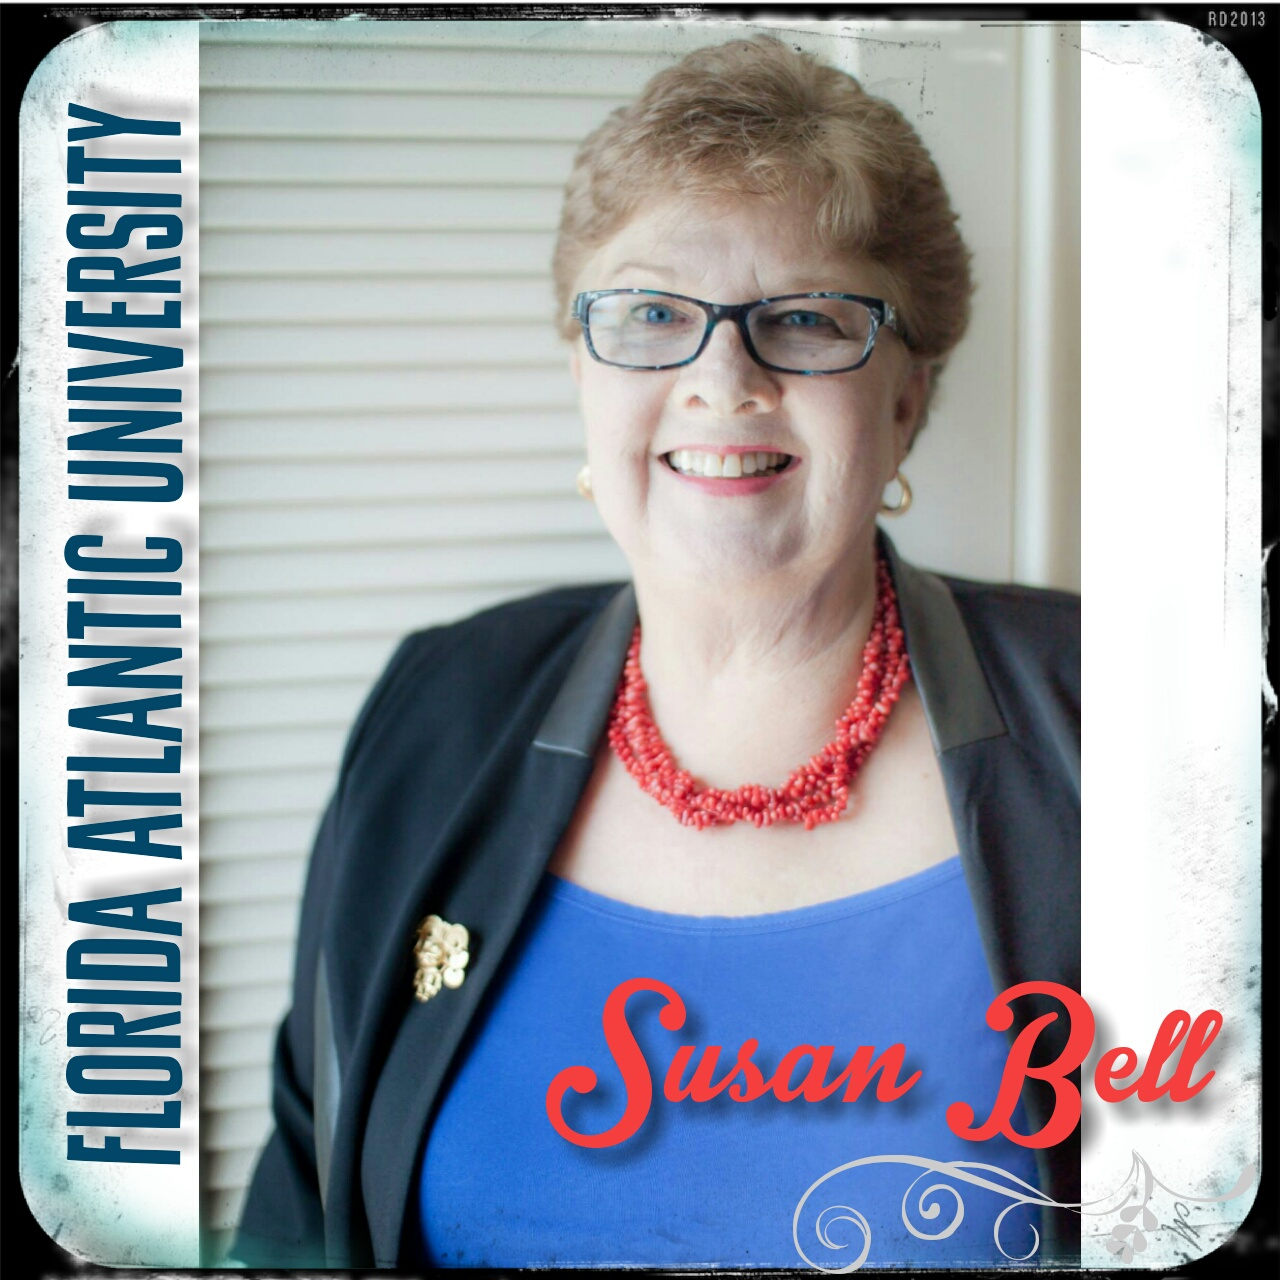 Profile photo of Susan Bell